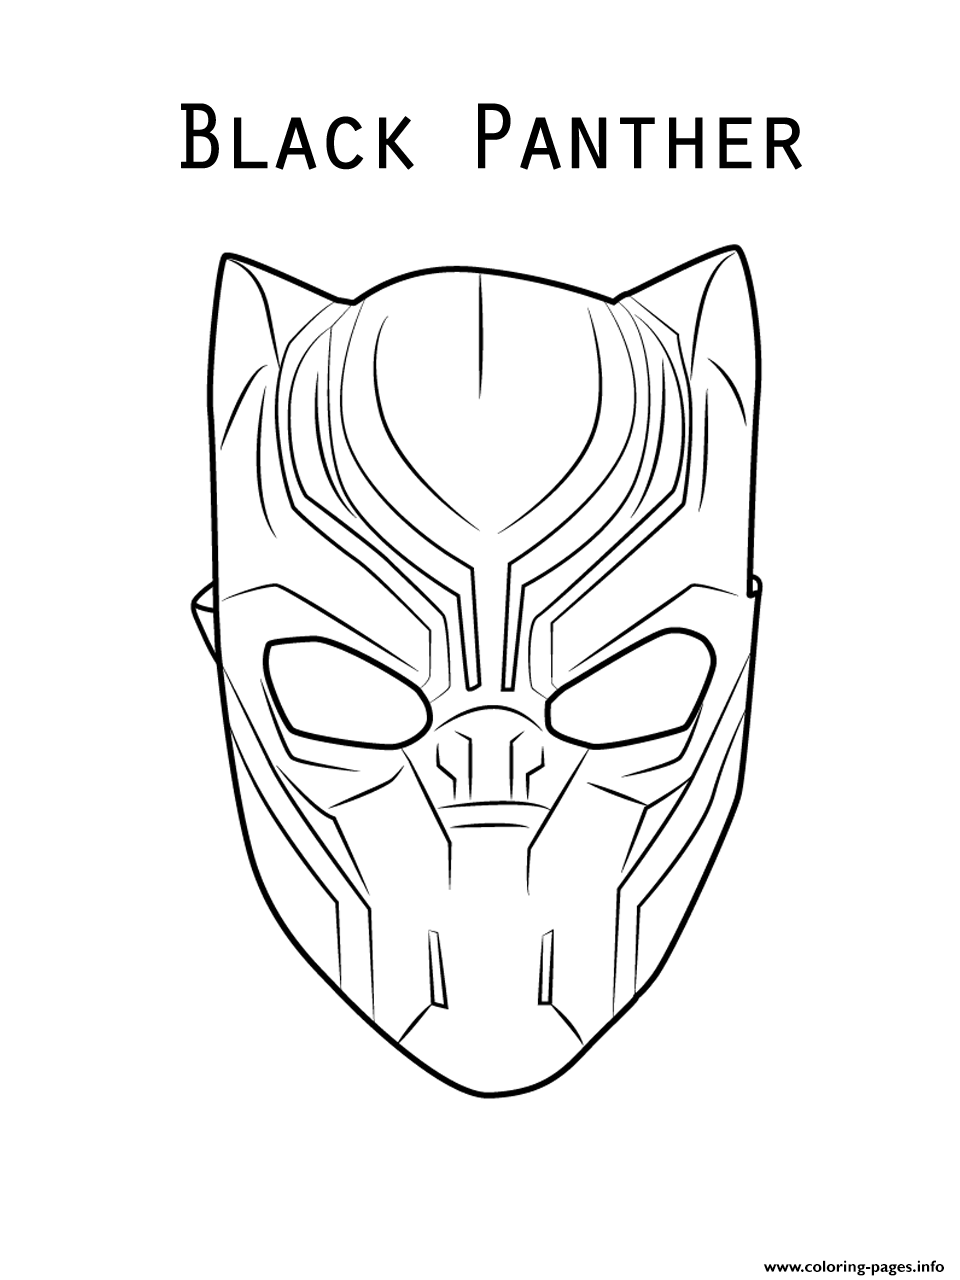 Print Marvel Movie Black Panther Mask Coloring Pages In